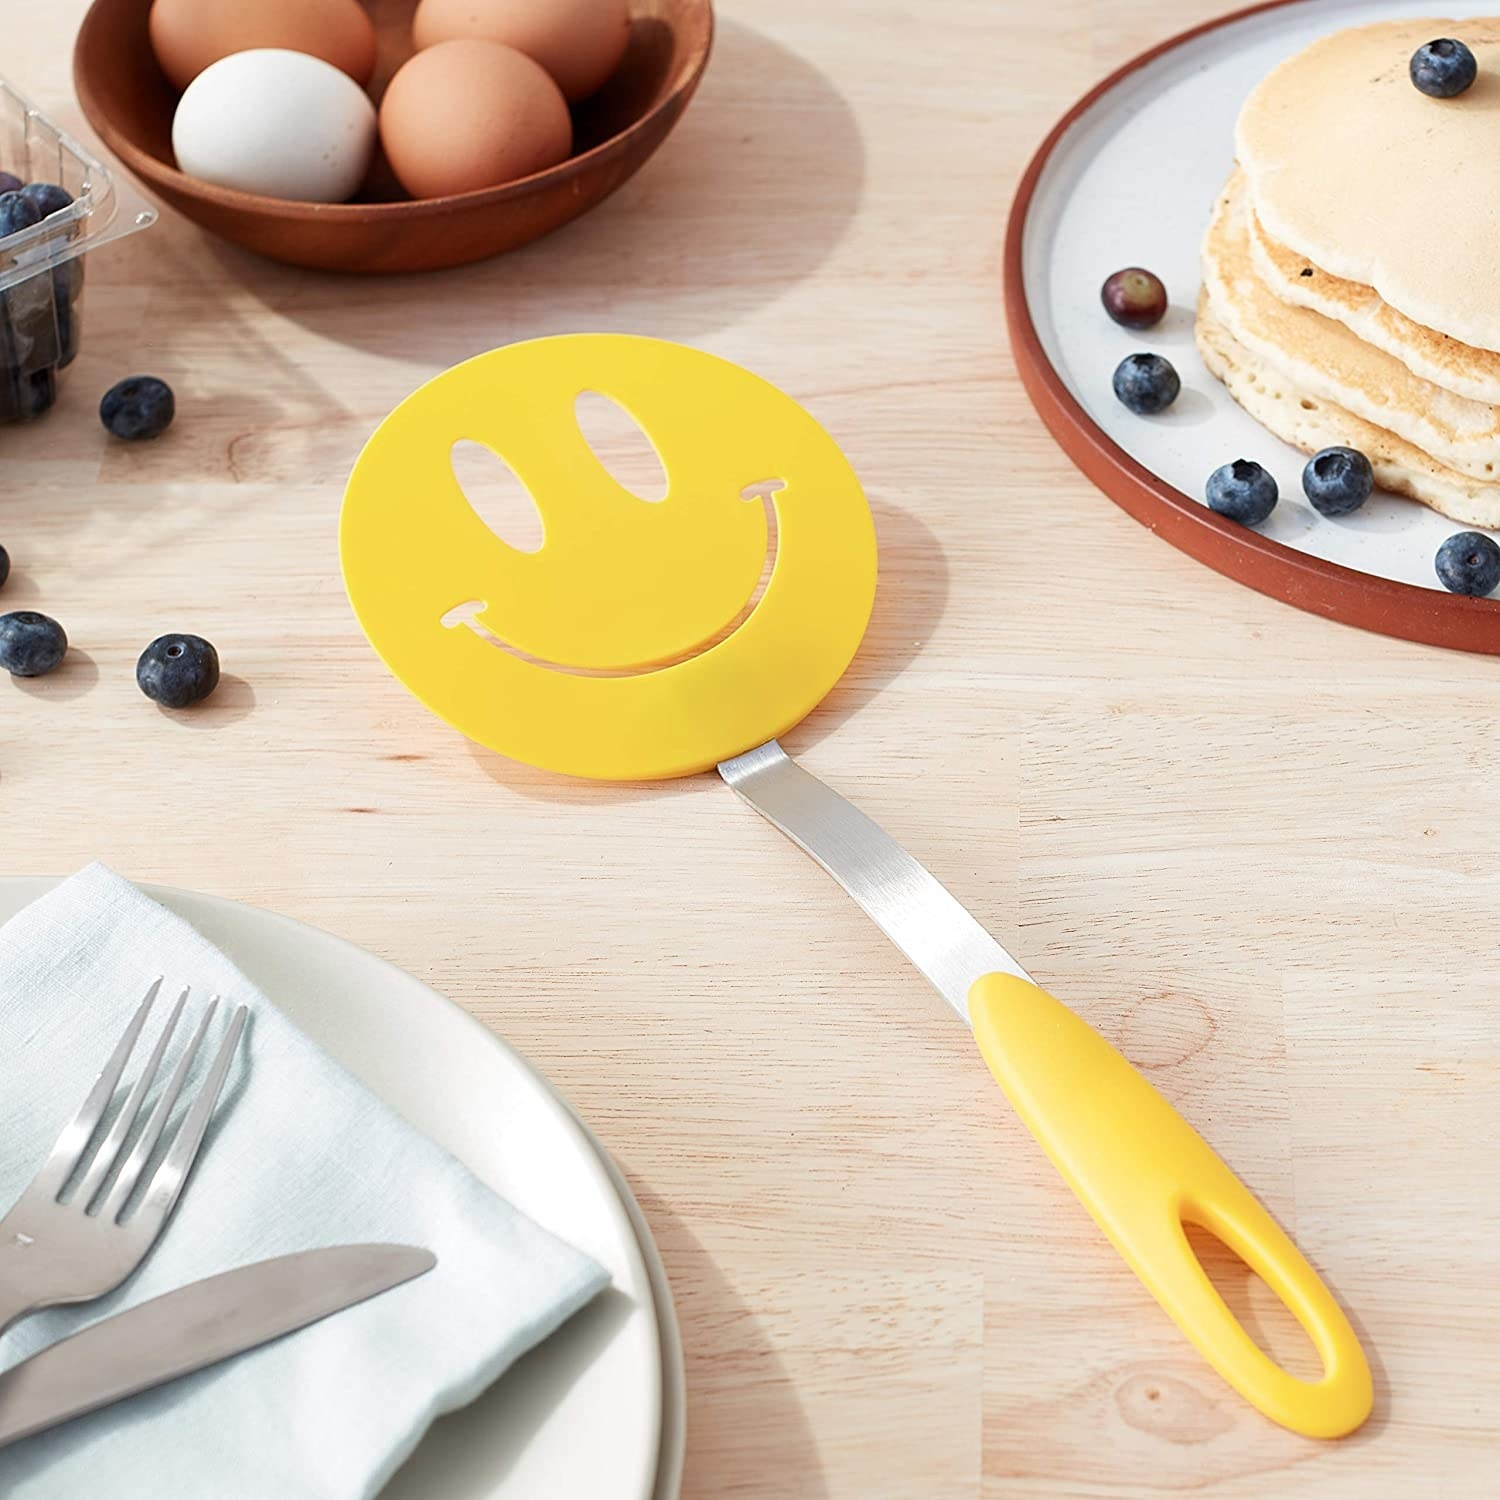 A spatula with a smiley face on the end